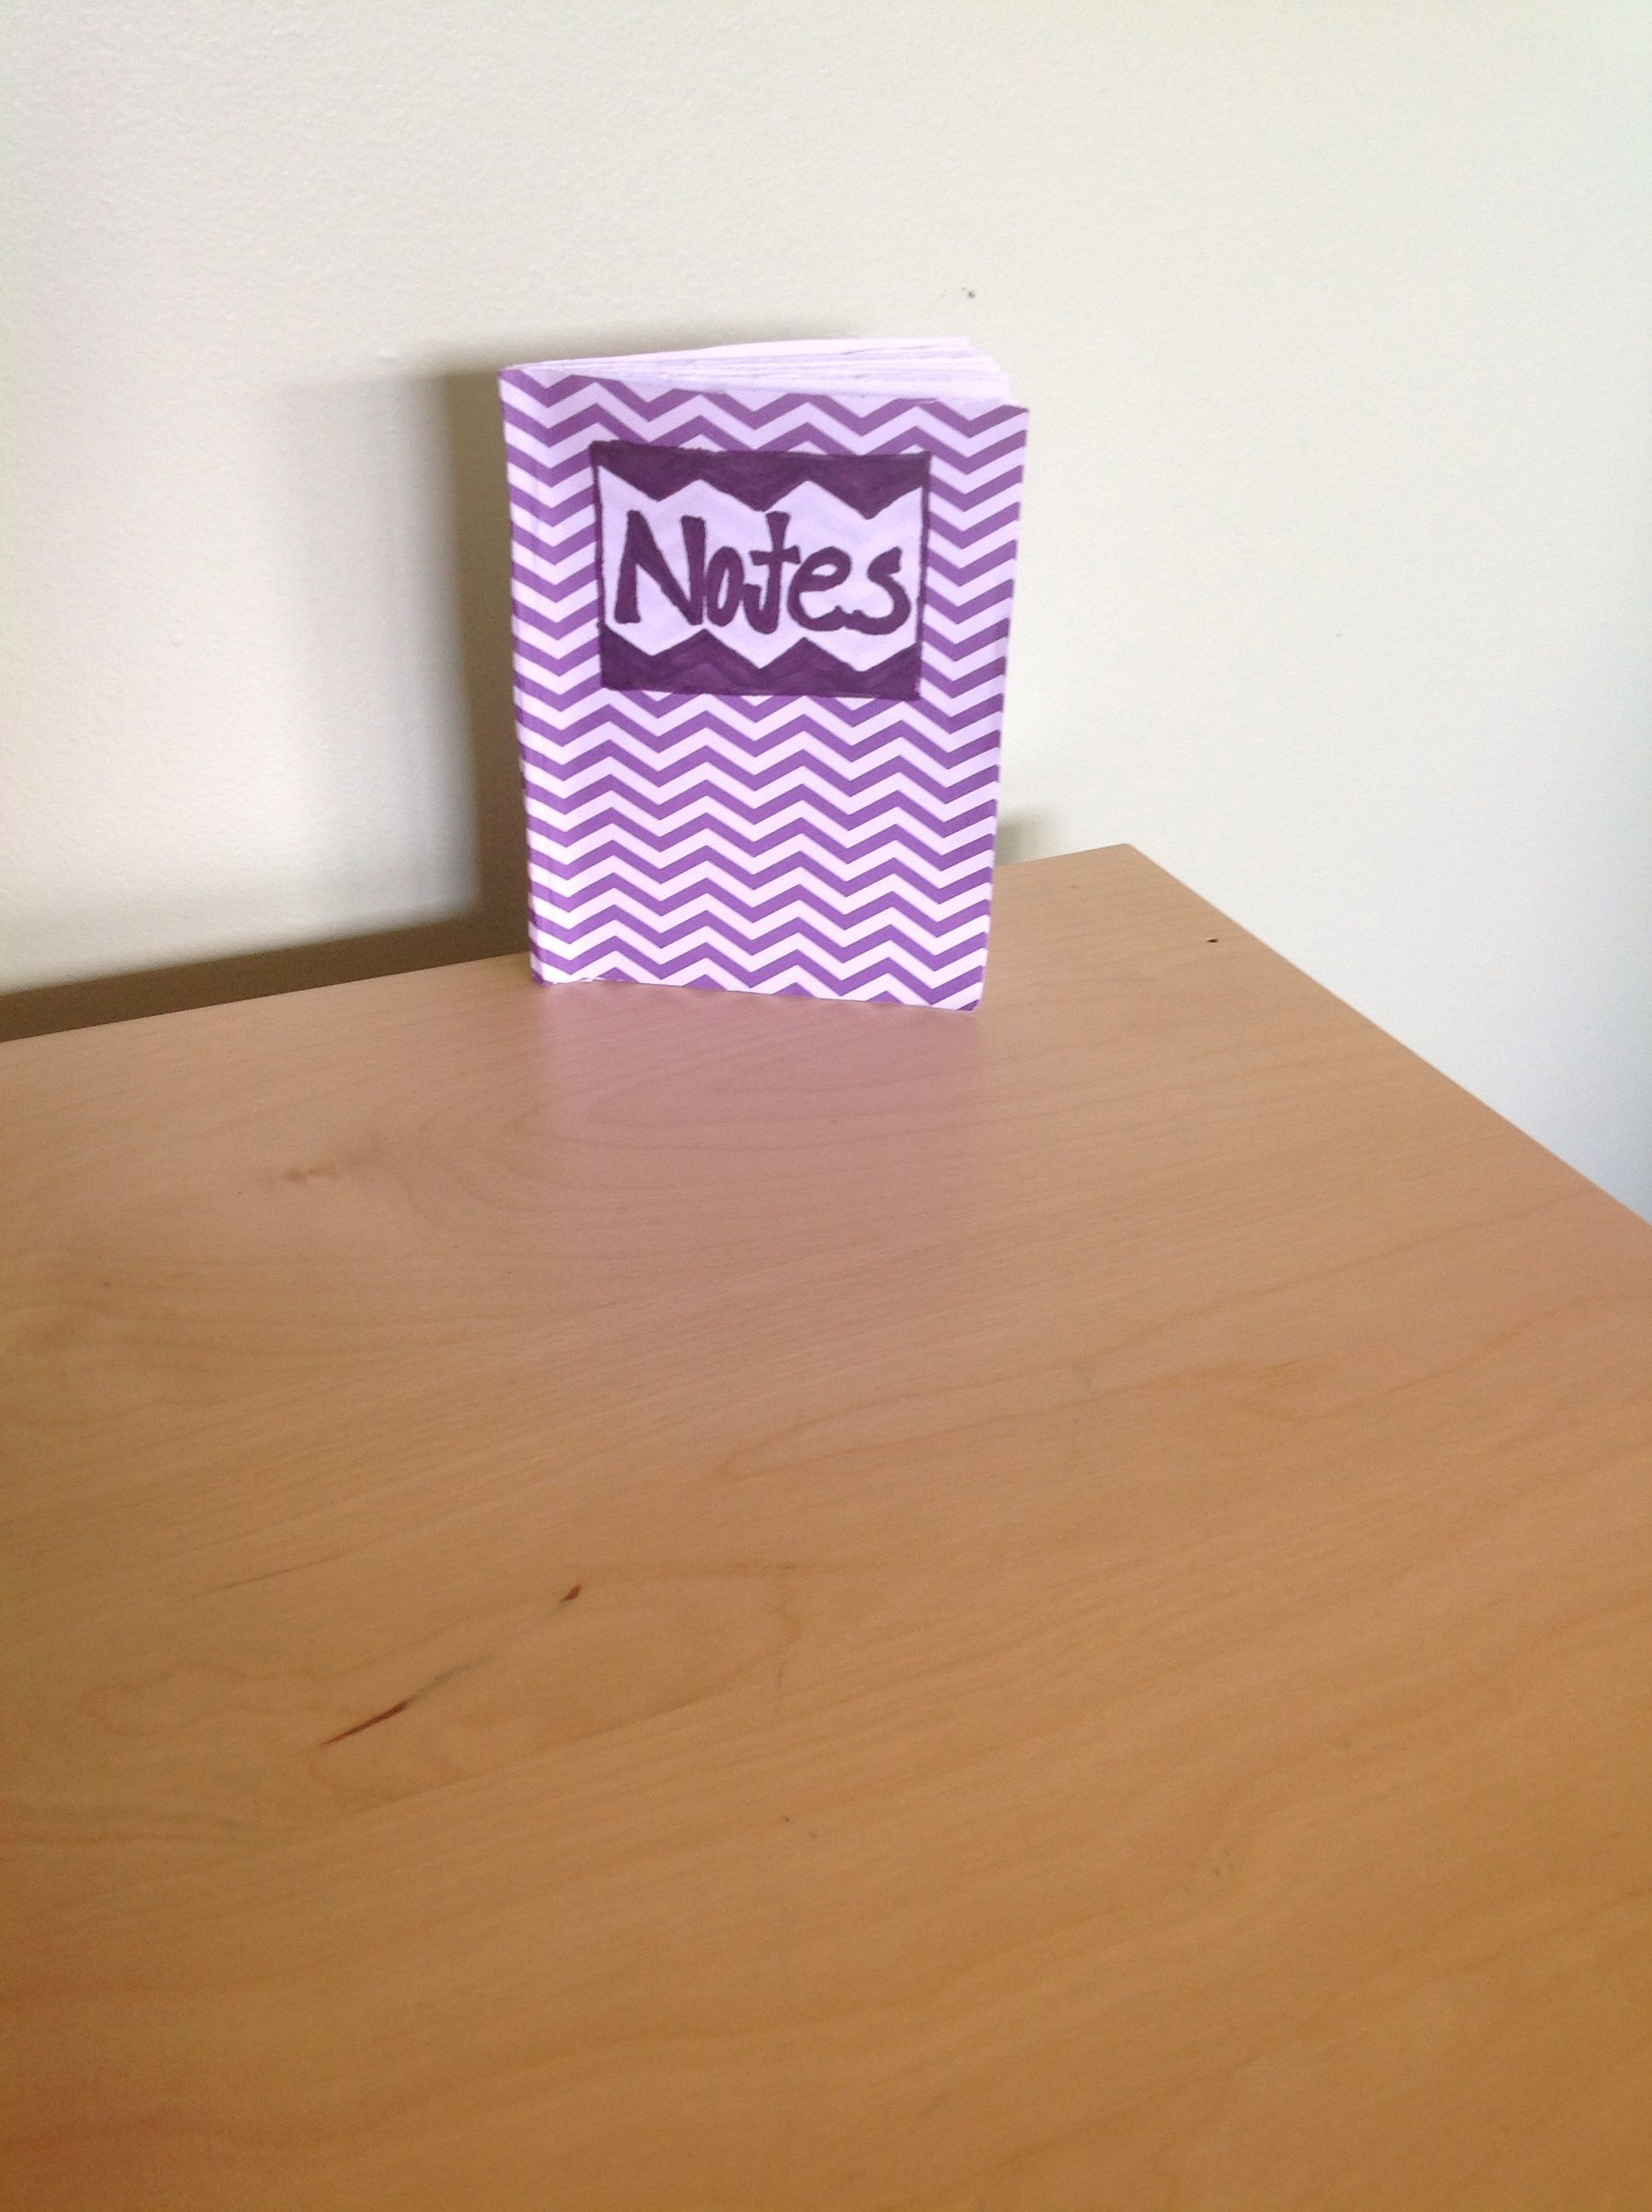 Fold 5 papers staple cut the closed edges and take decorated paper glue on and make label customize you own!